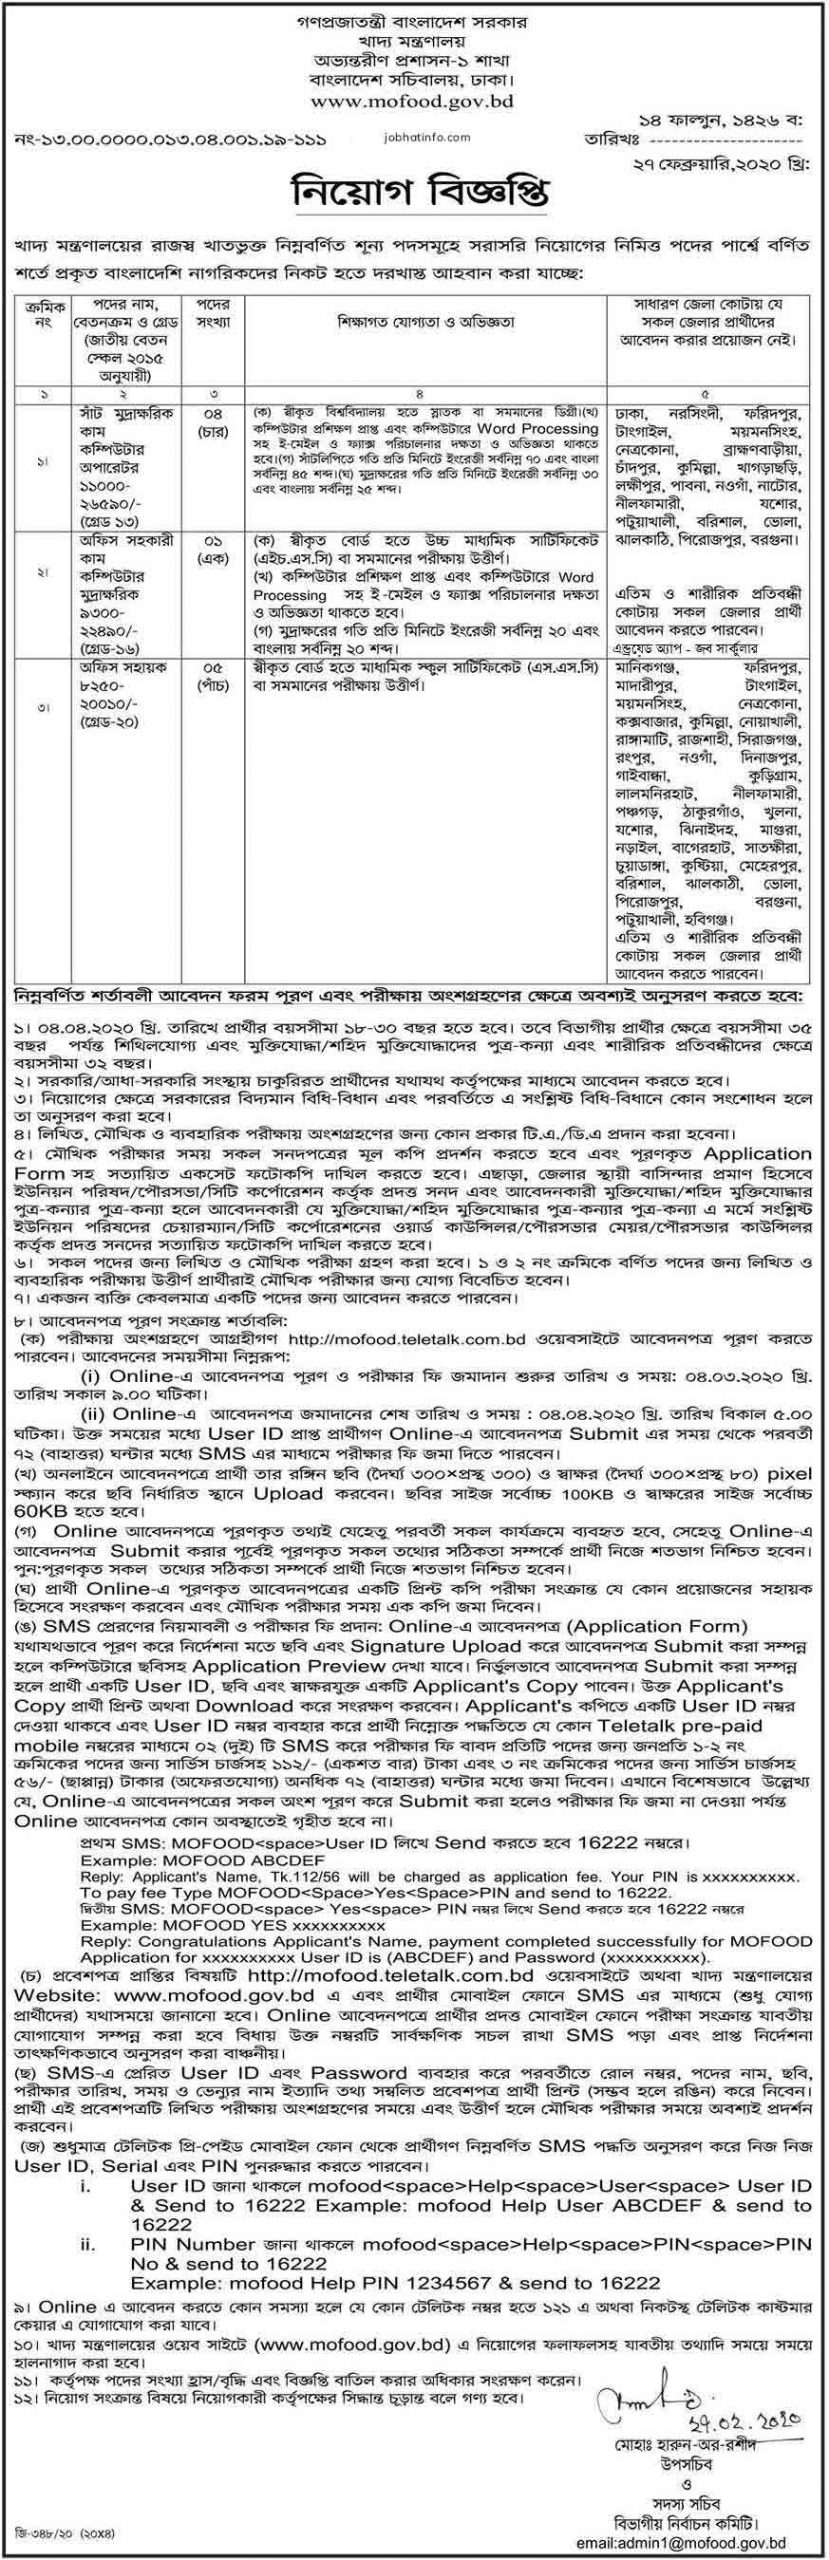 Food Ministry Job Circular 2020 Apply mofood.teletalk.com.bd 1